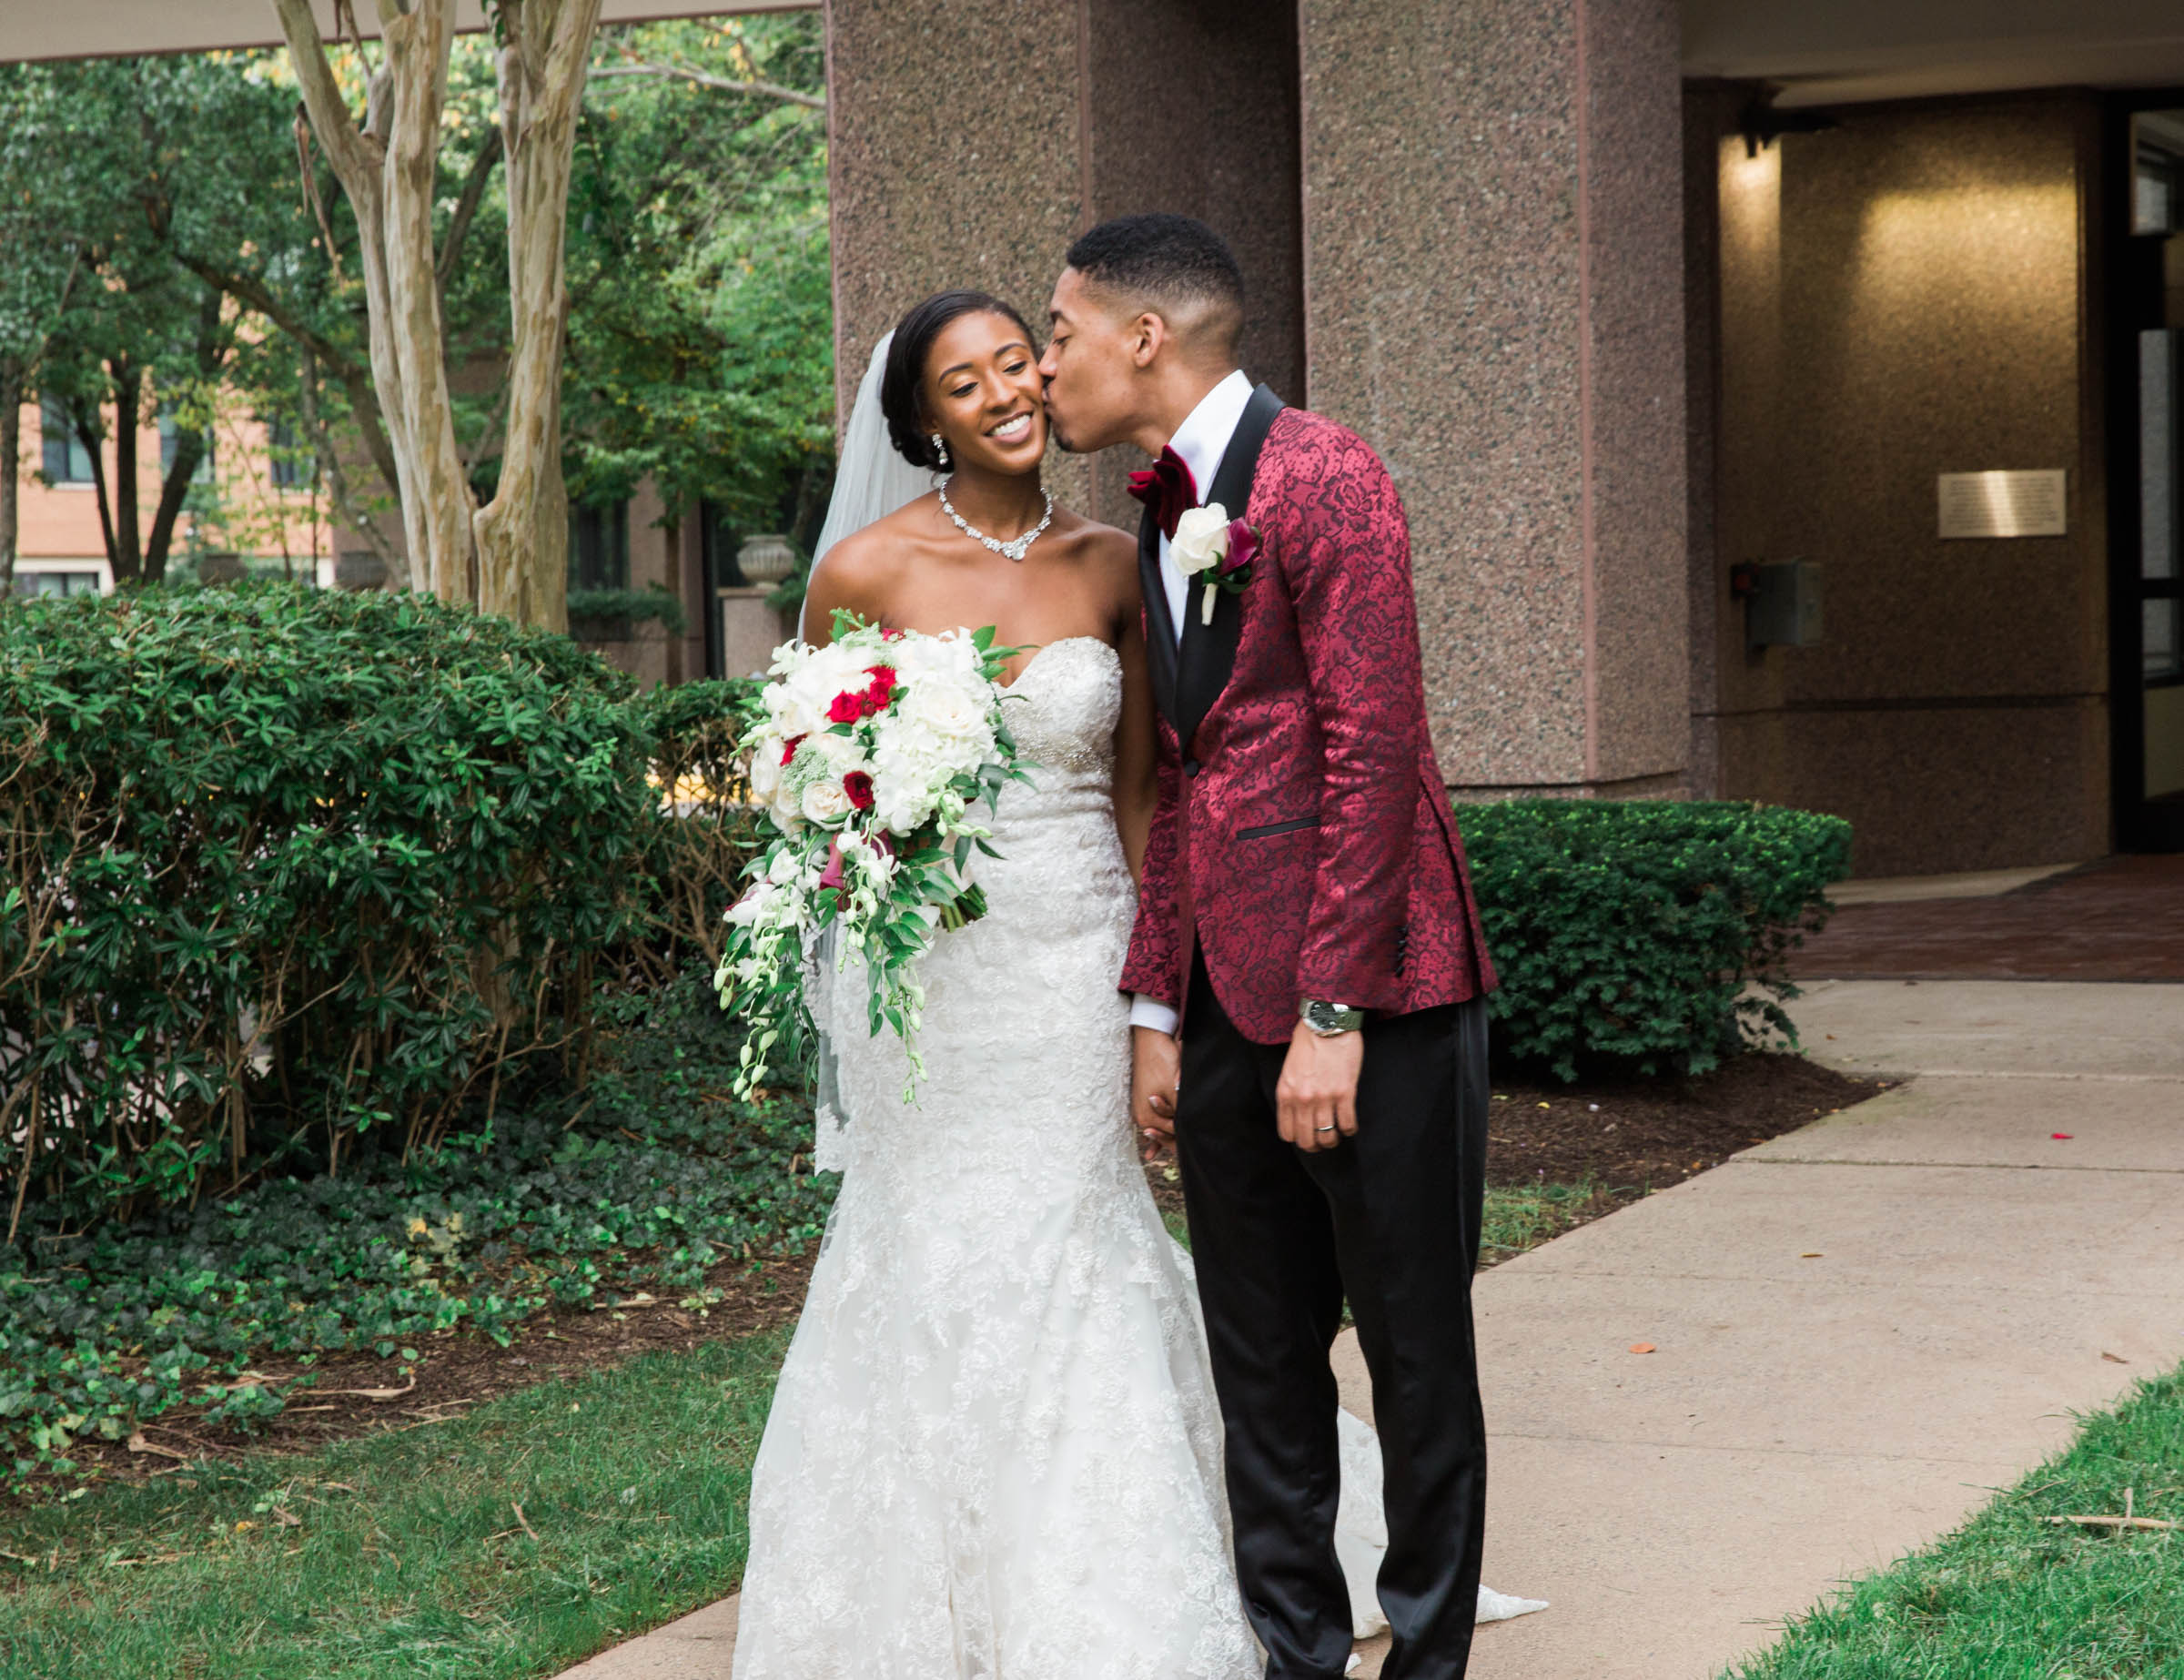 Black Bride Dream Wedding at  Hyatt Regency Fairfax Virginia Husband and Wife Wedding Photographers Megapixels Media Photography (67 of 104).jpg